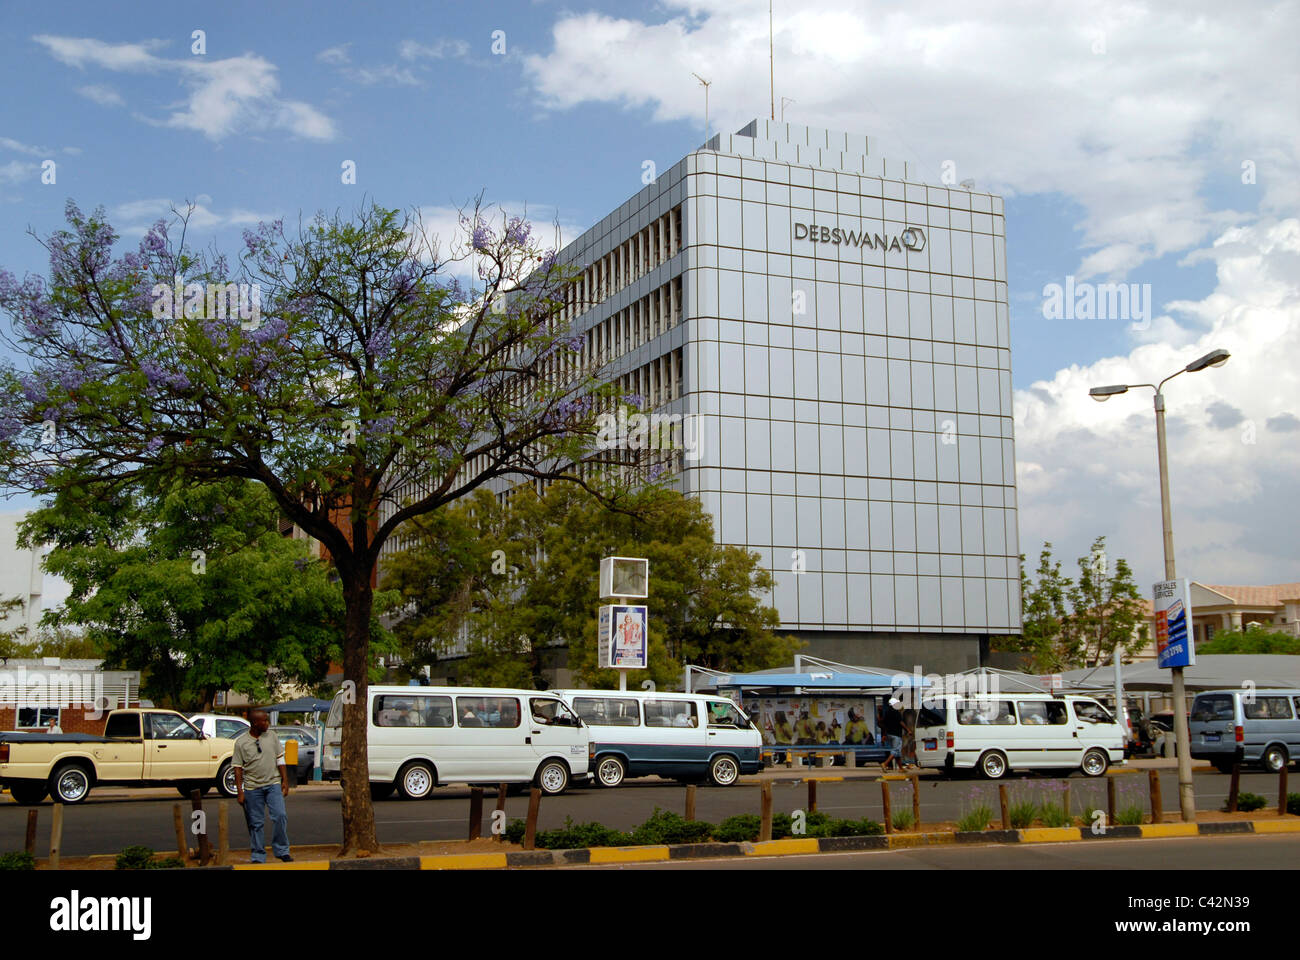 The HQ of Debswana, partnership between the Botswana Government and De Beers to exploit the country's diamond - Stock Image